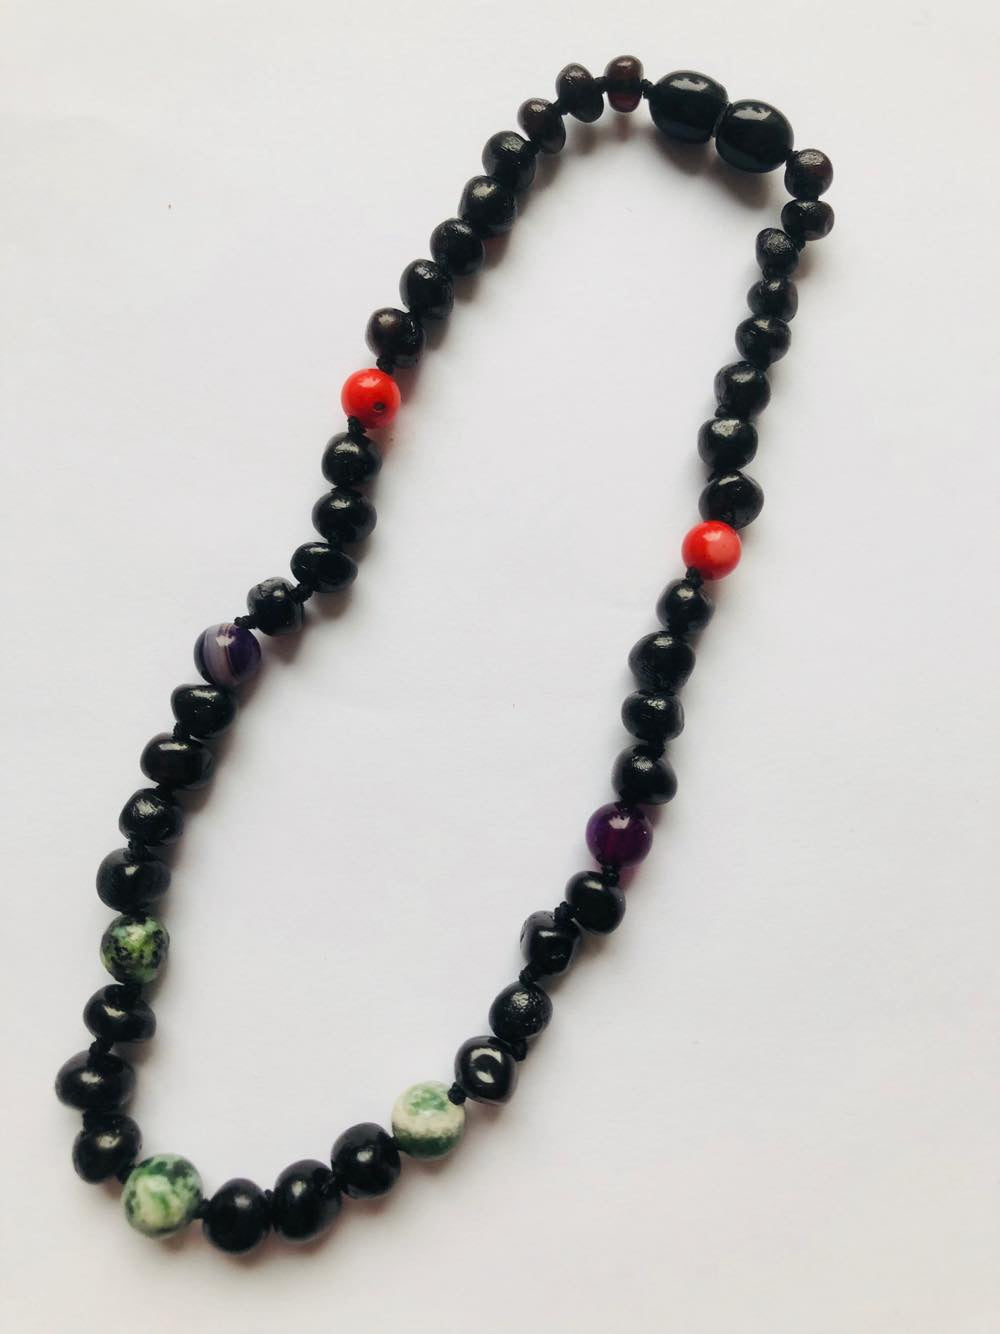 New Arrival  Pre order only Baby Baltic Amber teething necklace - Black and Red